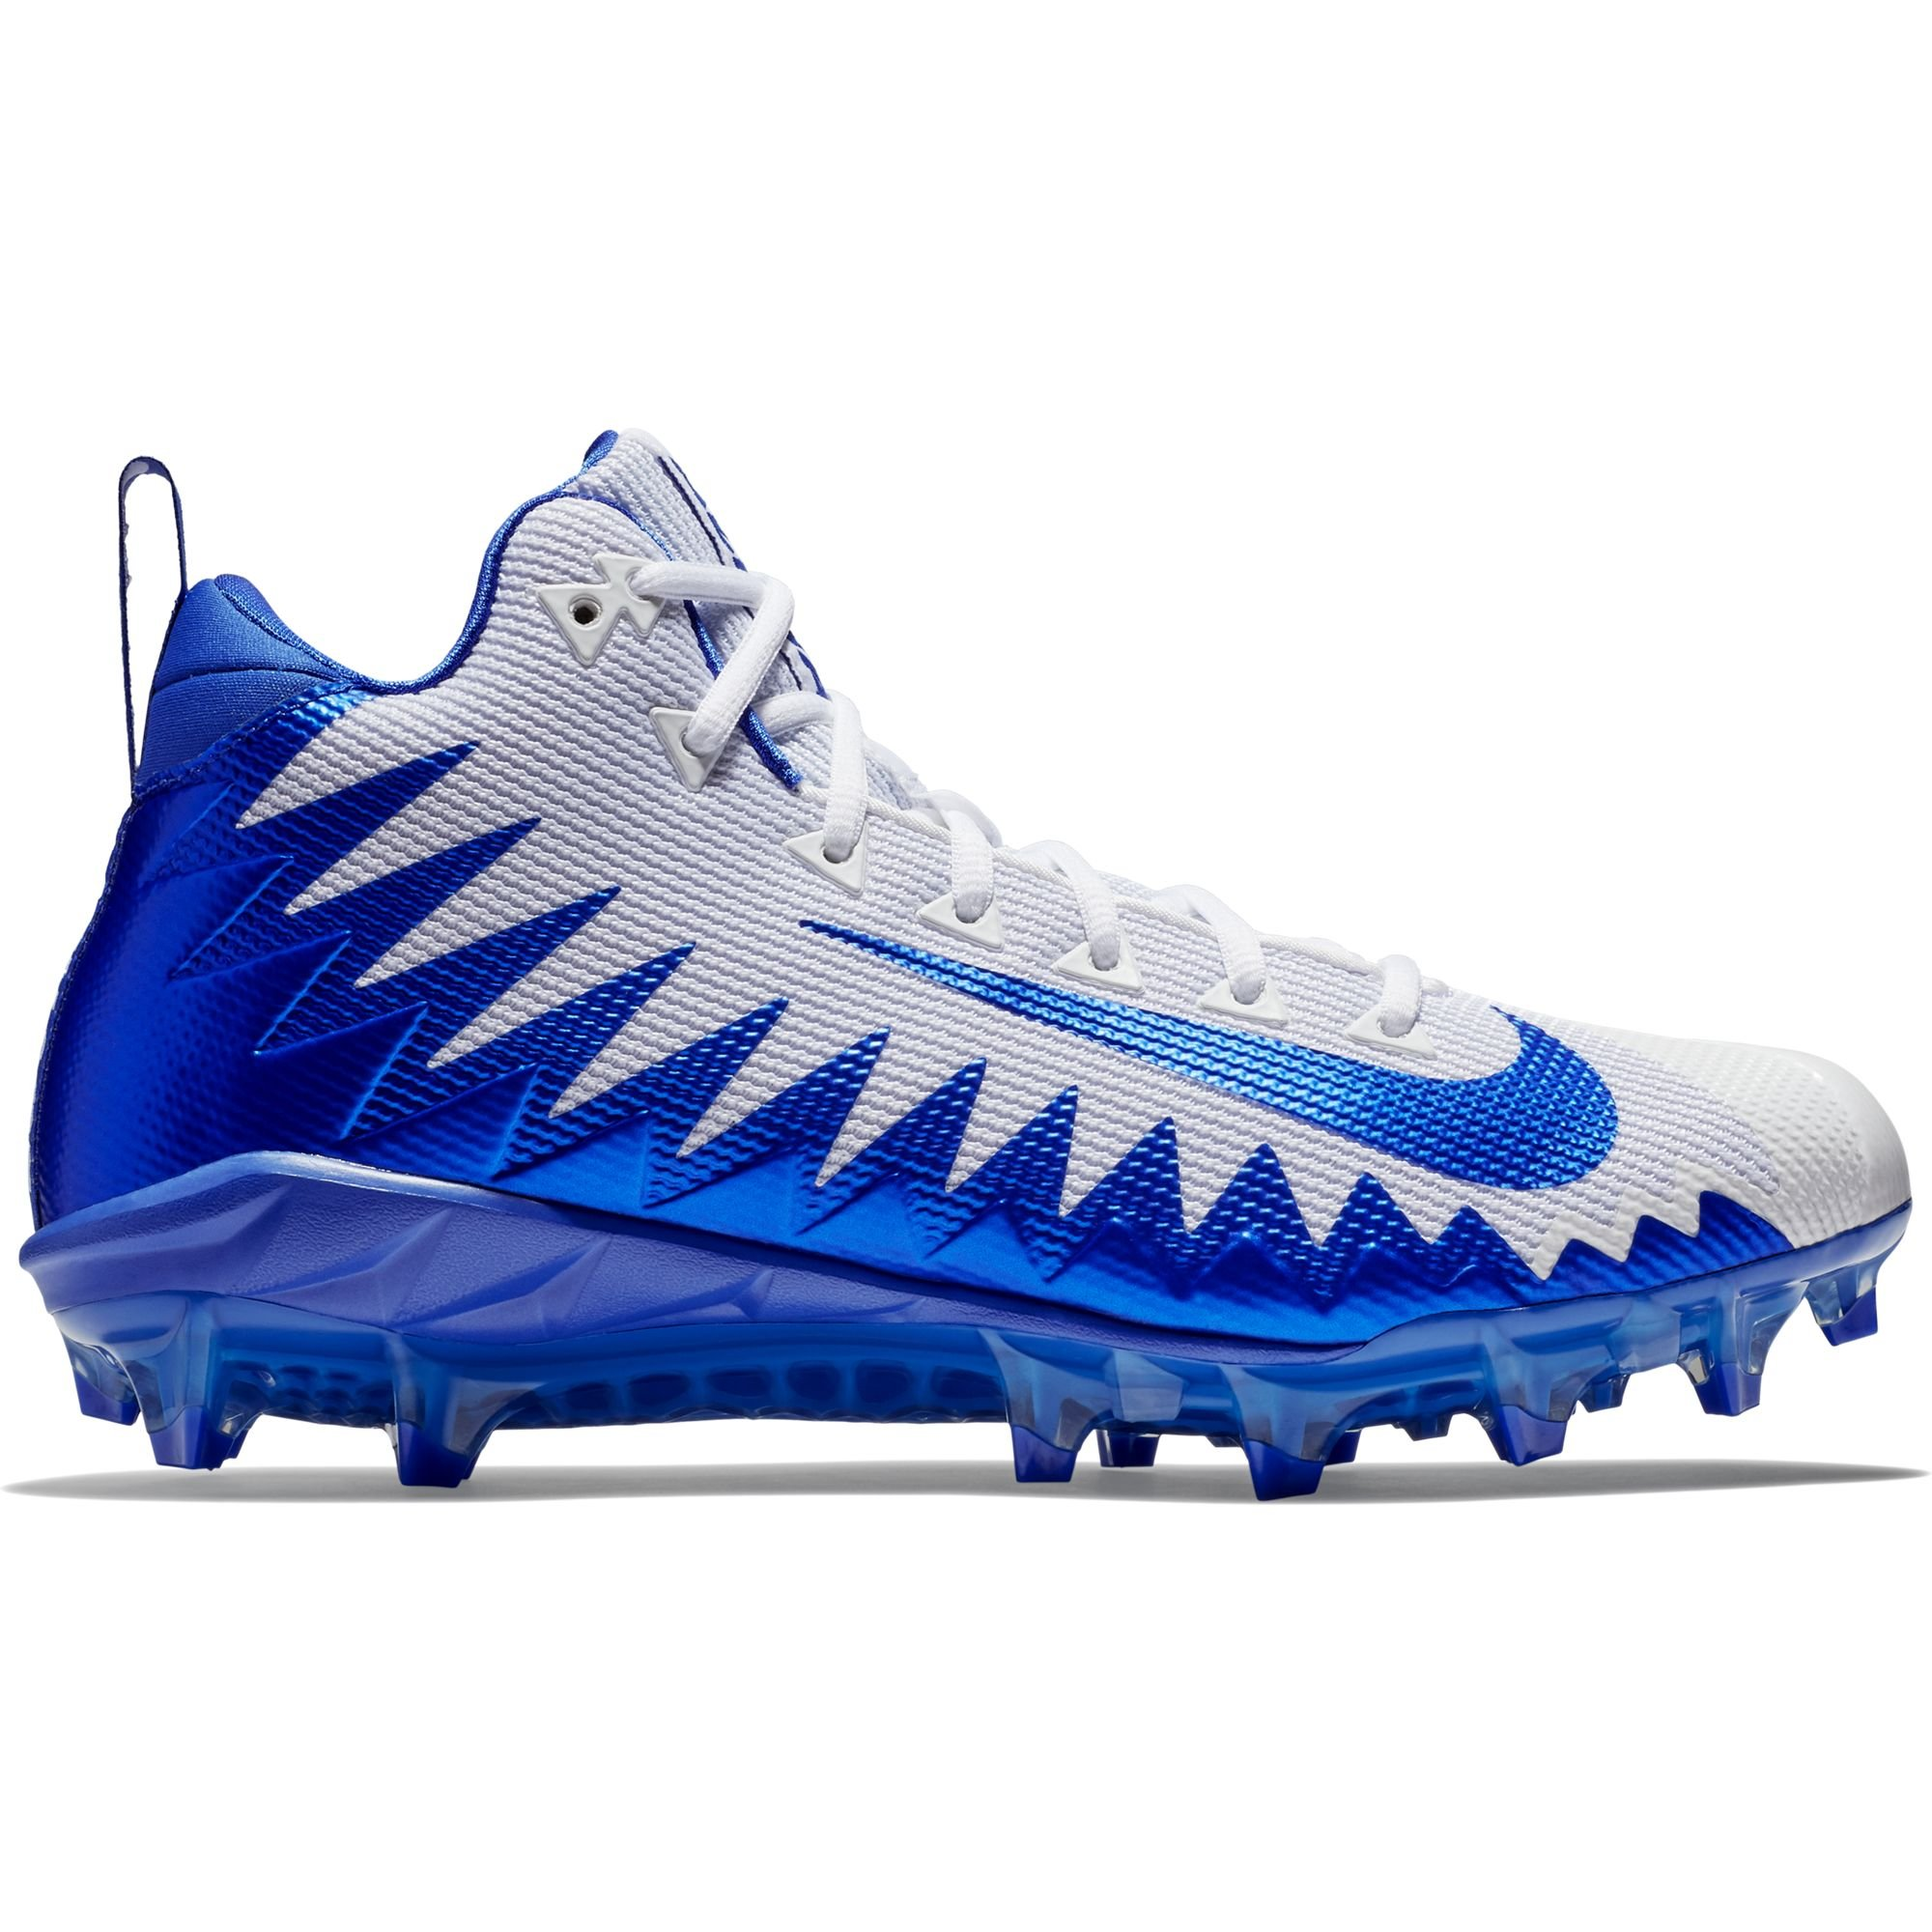 new arrival 3cfe9 c74b4 Galleon - NIKE Men s Alpha Menace Pro Mid Football Cleat White Game Royal Photo  Blue Size 8 M US